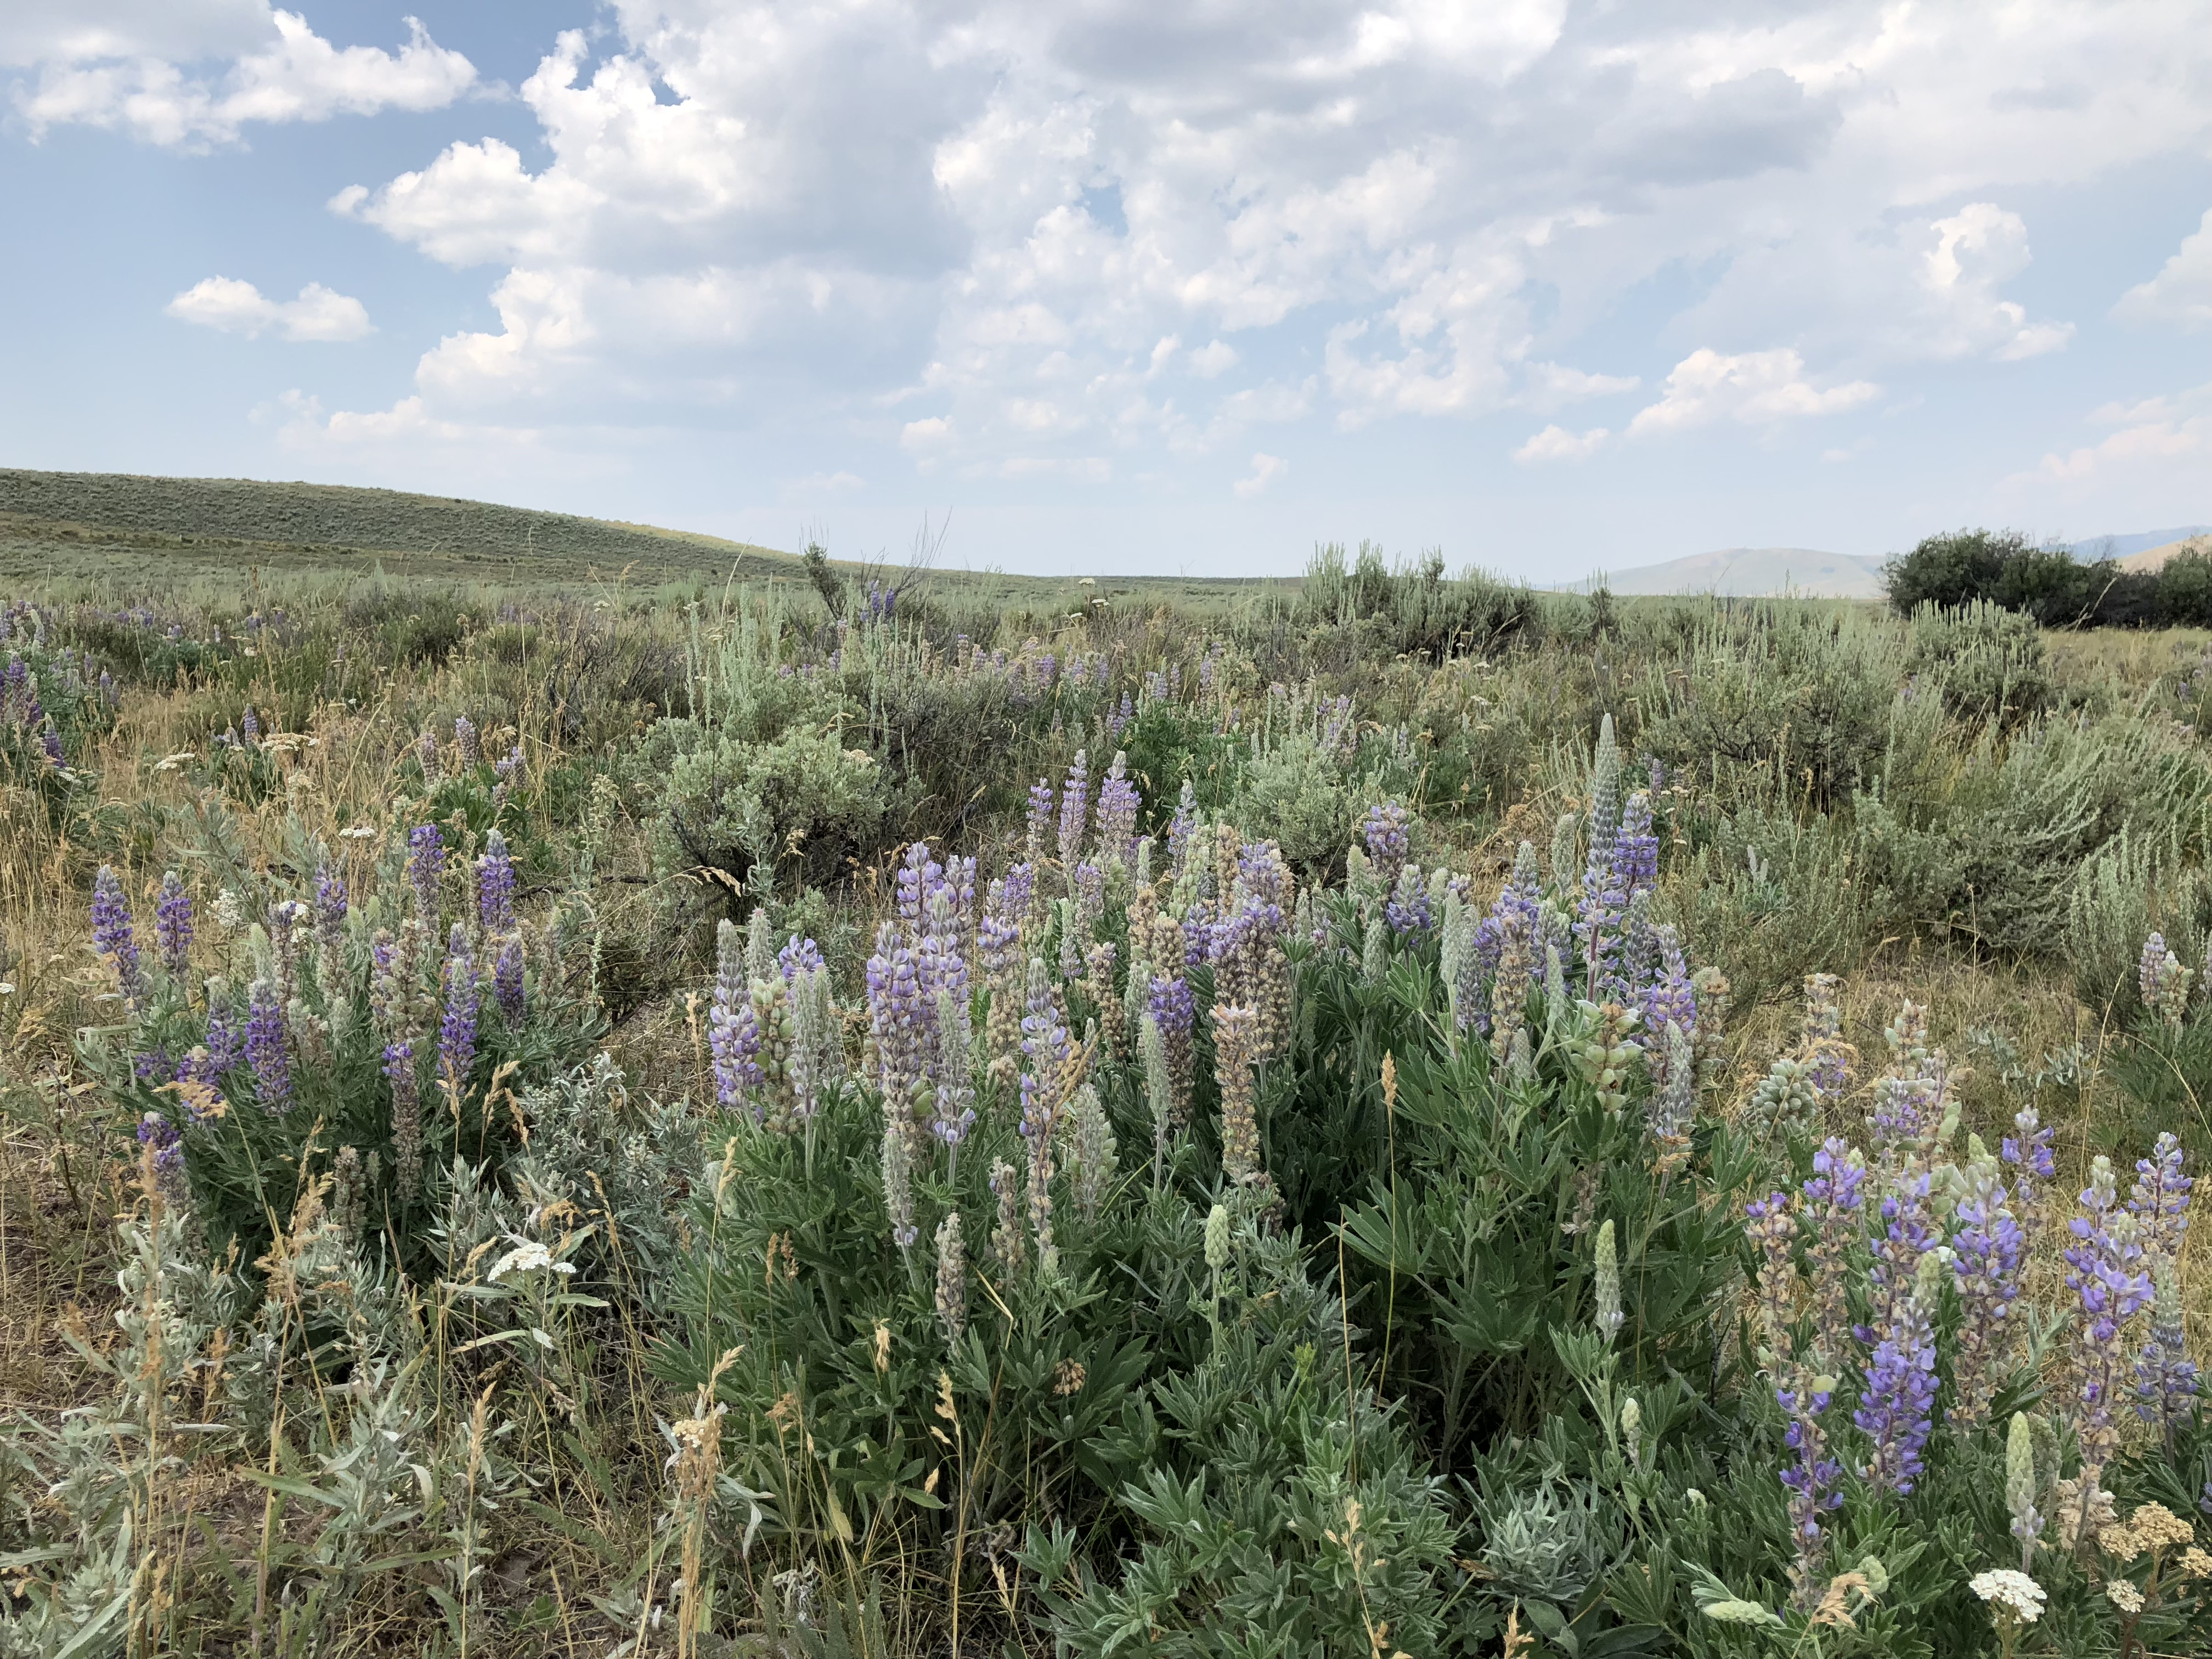 Lupine, yarrow, and sagebrush in a field on a partially cloudy day